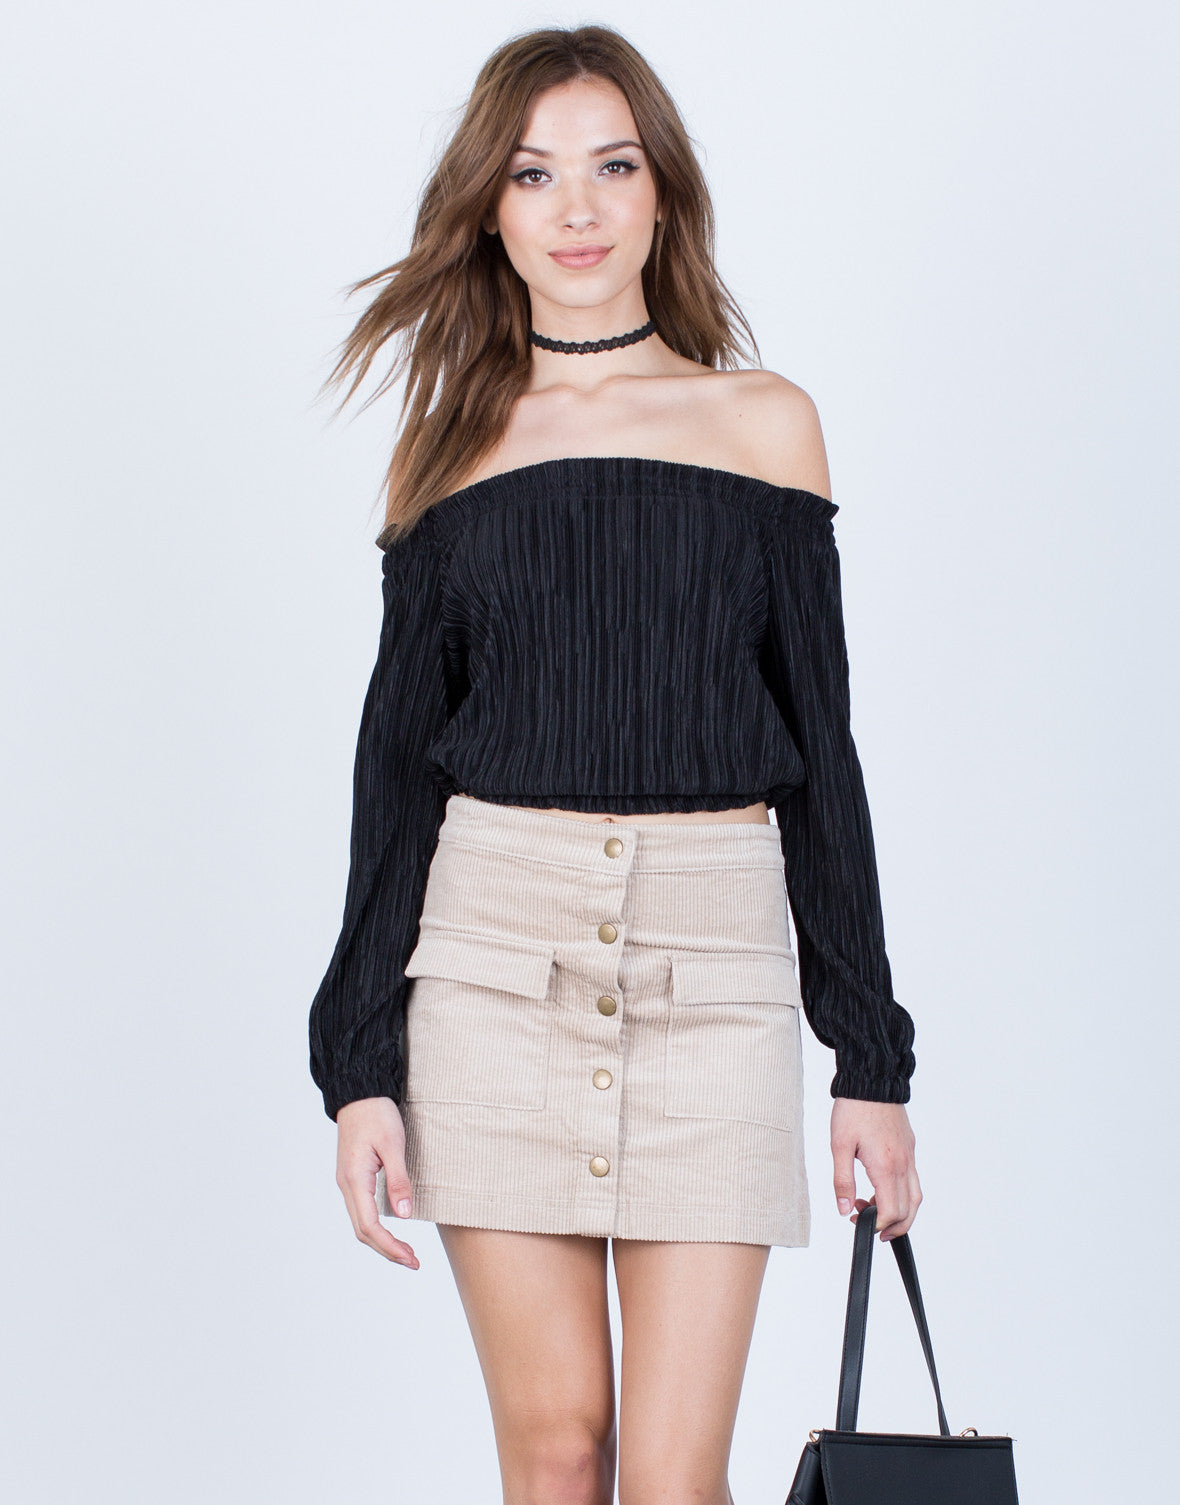 63dab34e2d9 Accordion Pleated Crop Top - Off the Shoulder Blouse - Pleated Top ...